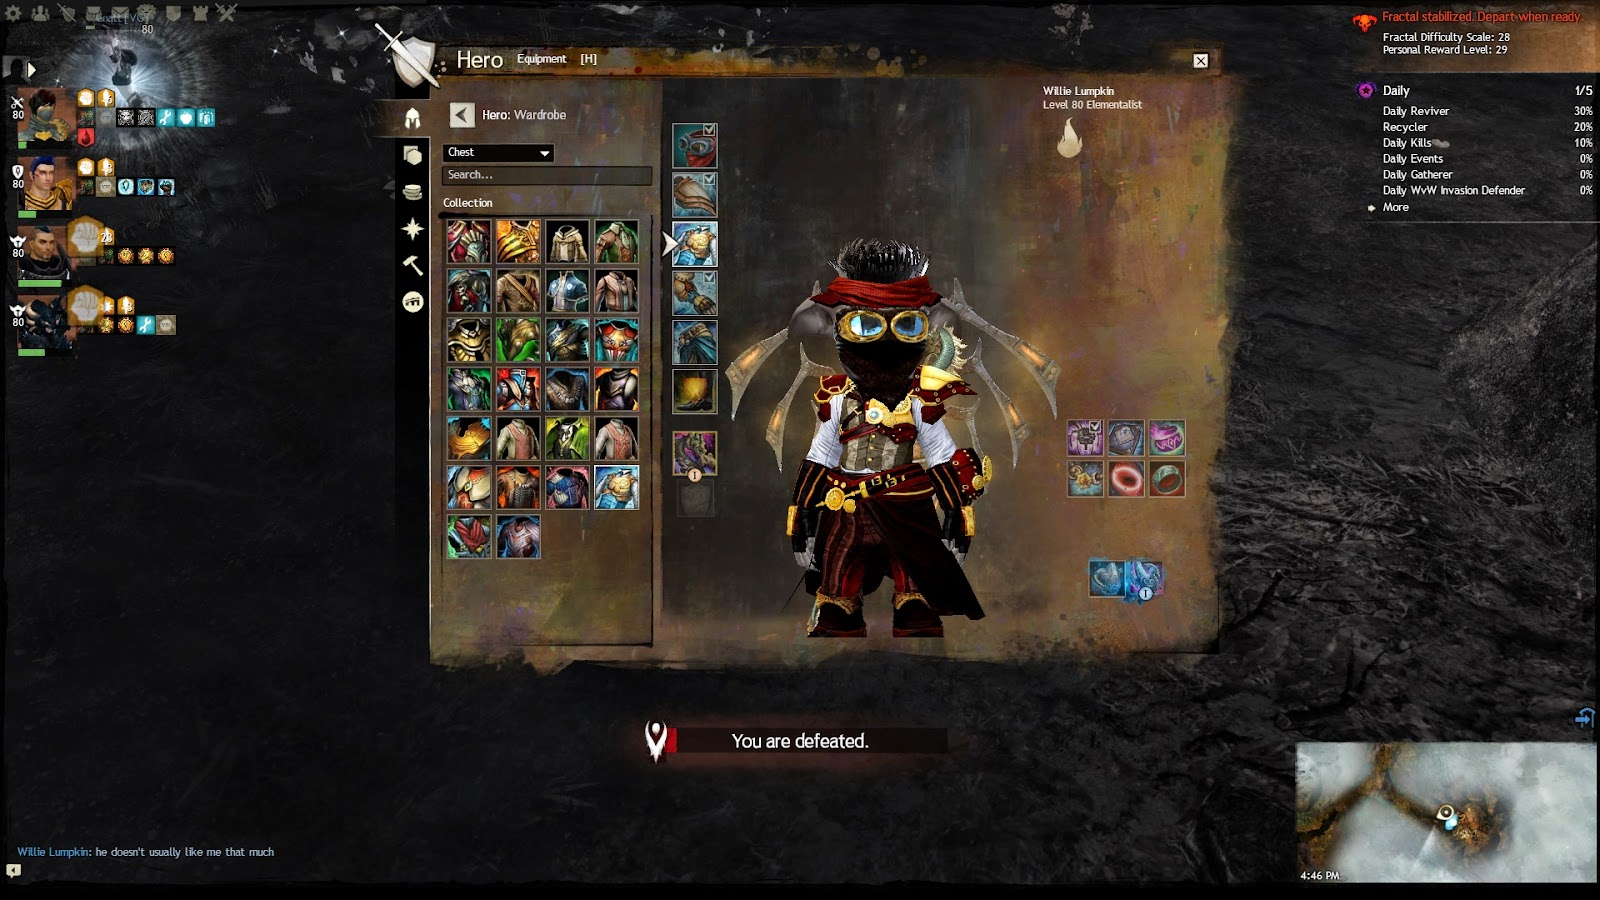 Trading system guild wars 2 - GW2BLTC  Introducing the